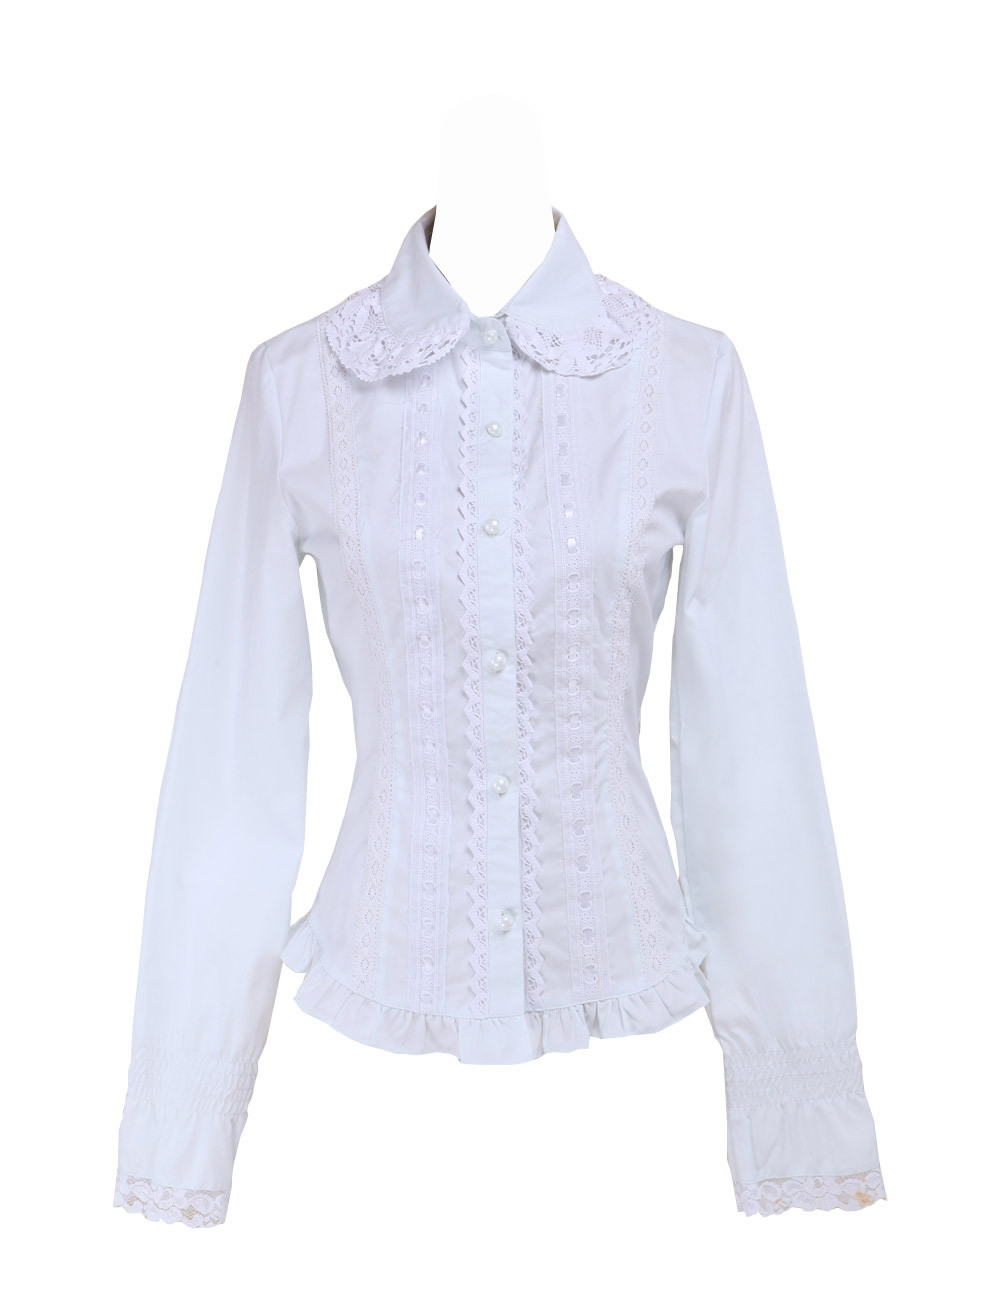 Primary image for White Cotton Lace Ruffle Lapel Vintage Victorian Lolita Shirt Blouse